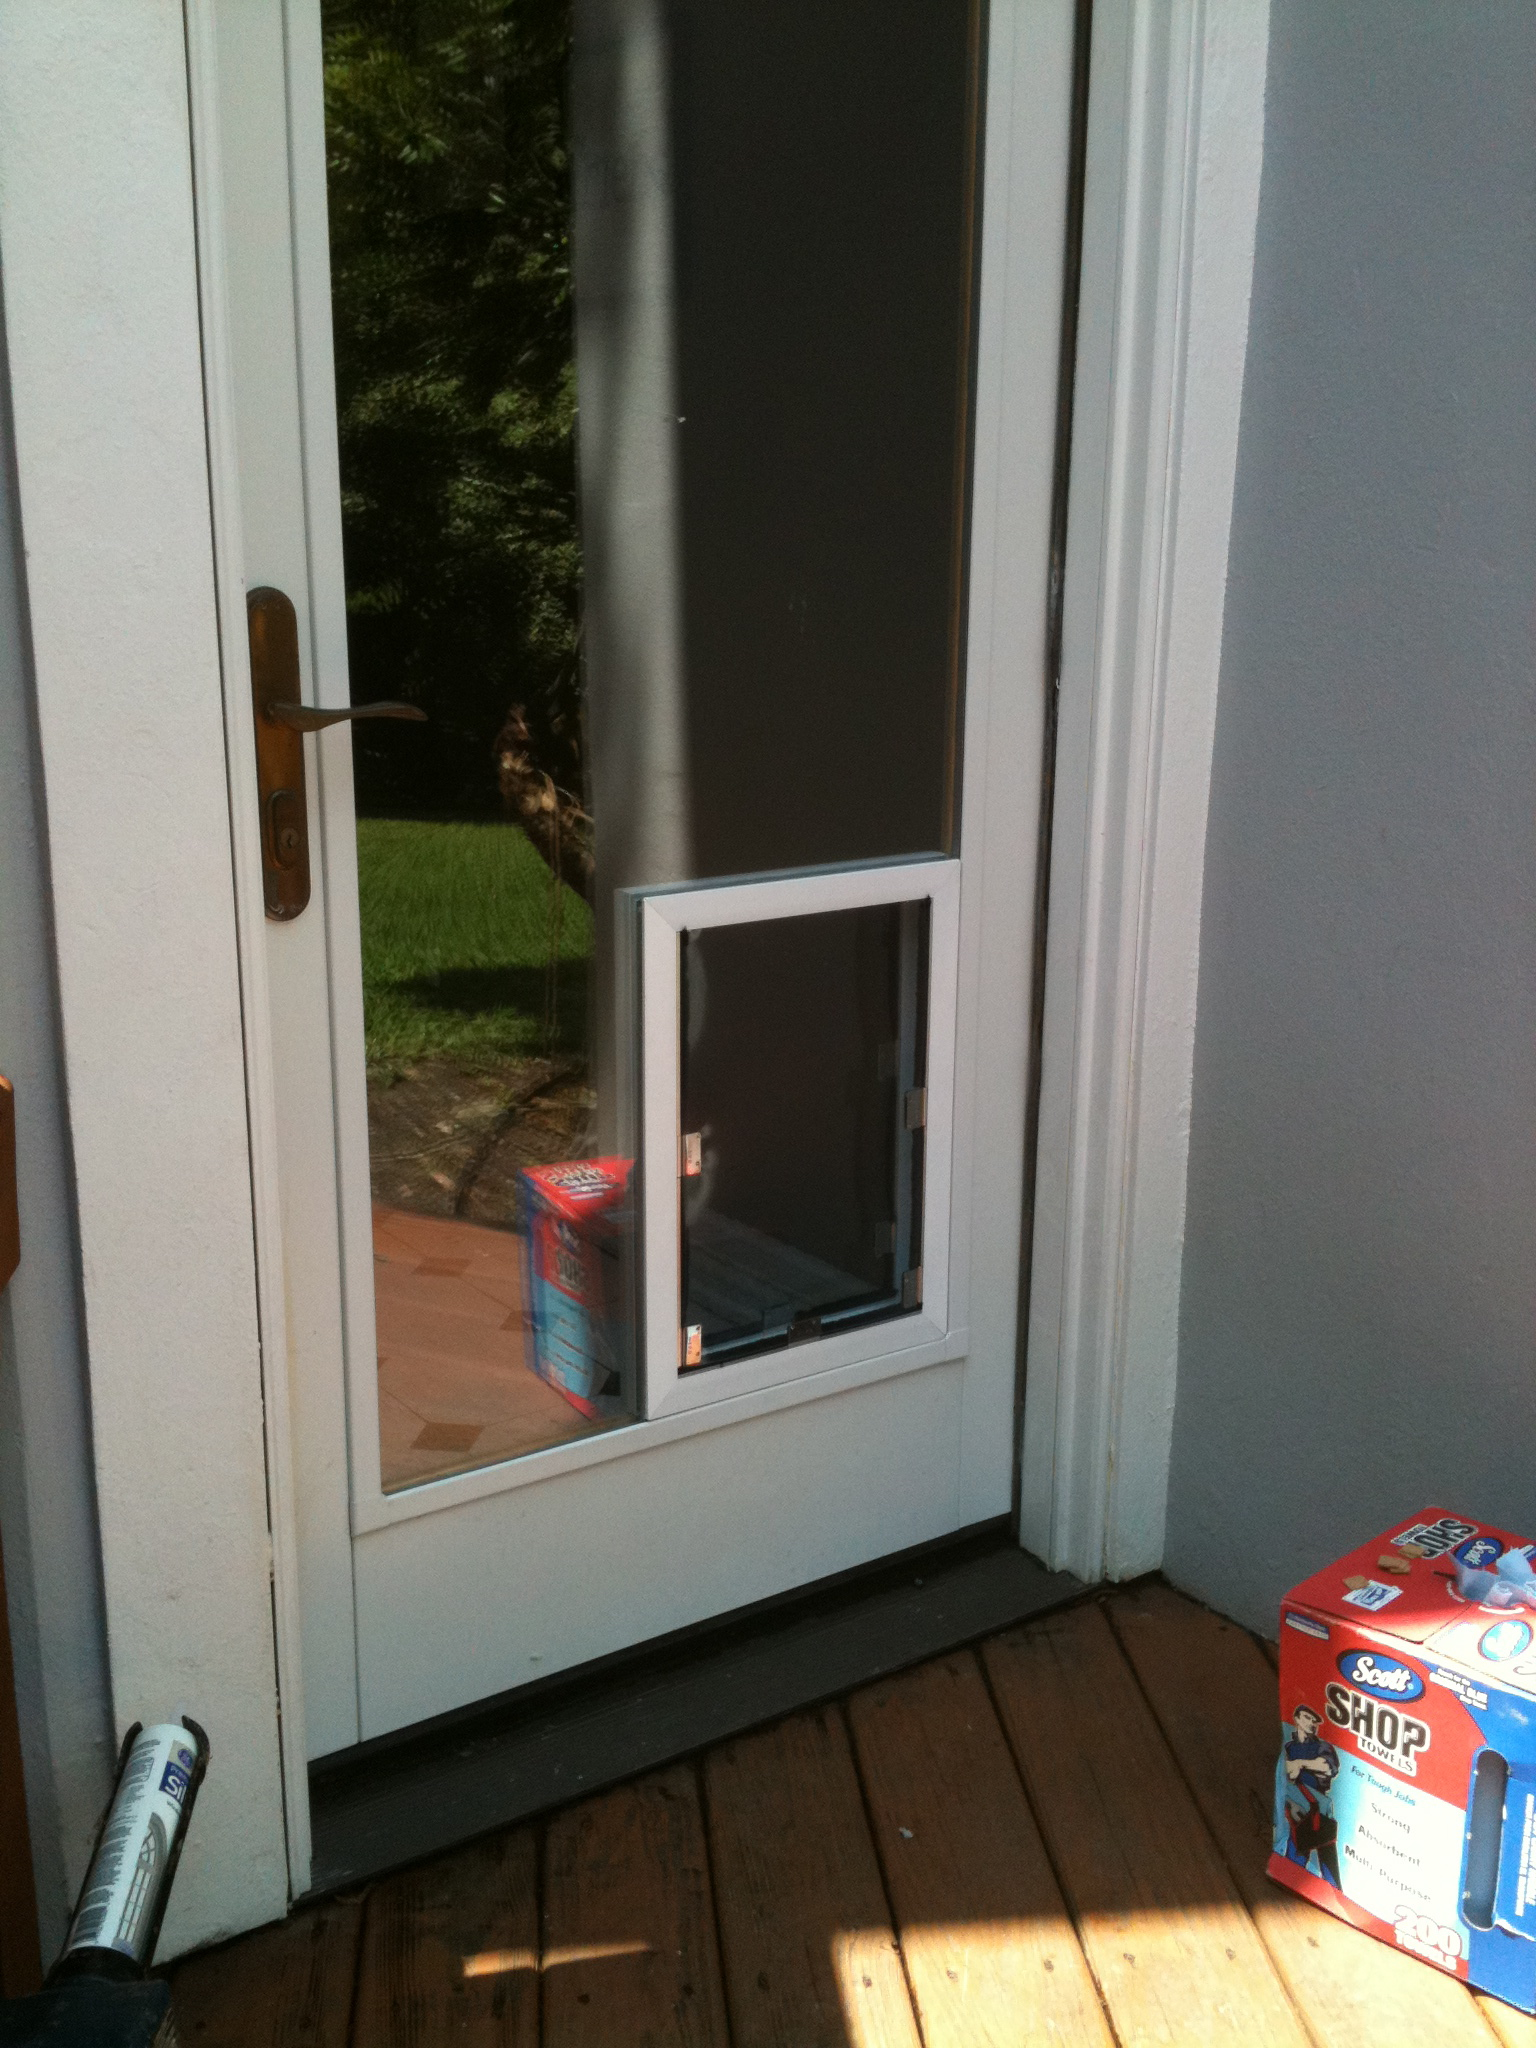 Glass Dog Door 20 Ways To Make To Make The Life Of Your Pets Easier And Safety Interior